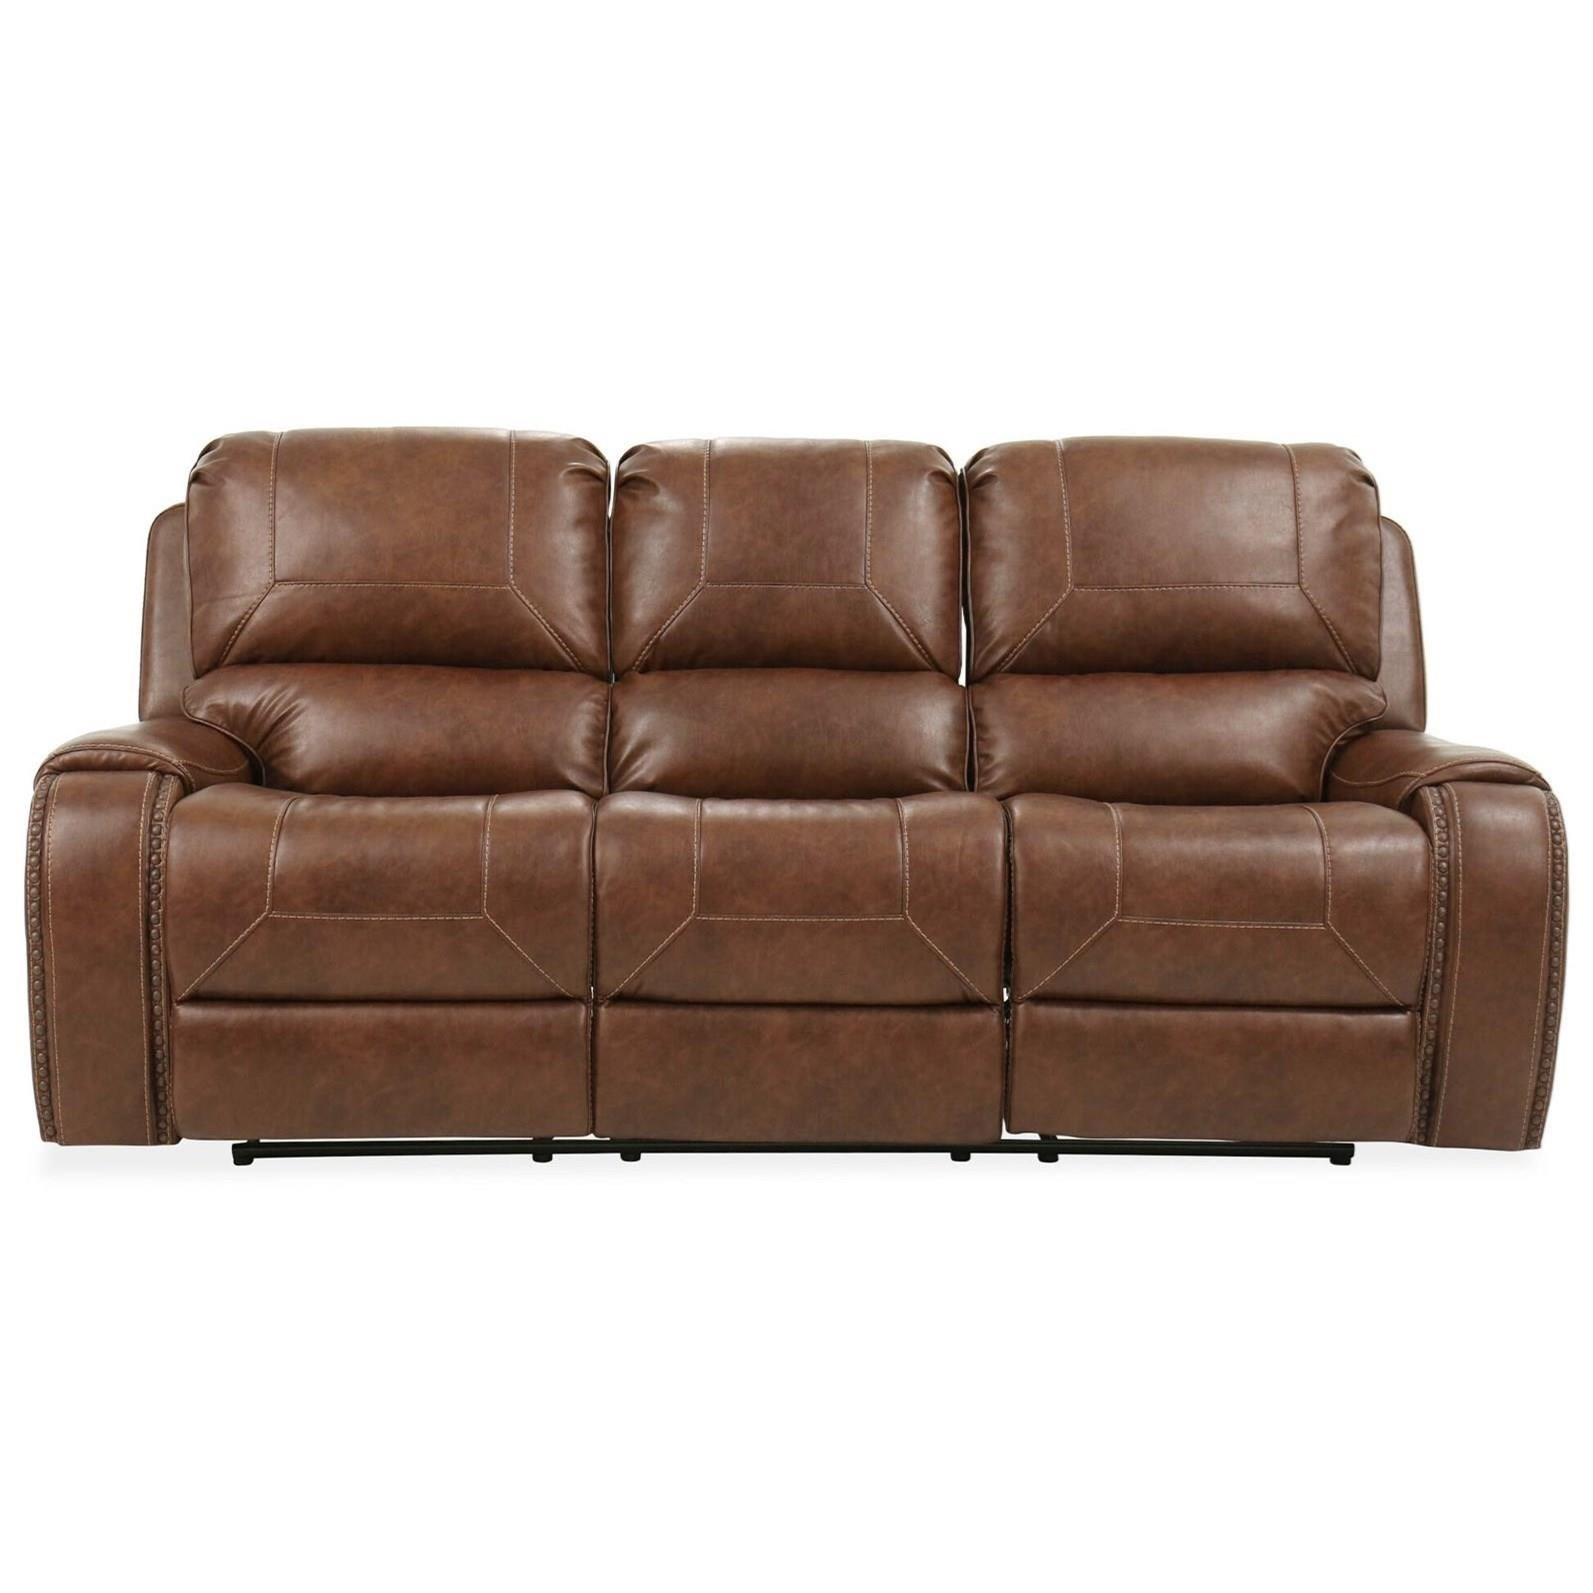 Keily Manual Motion Recliner Sofa by Steve Silver at Northeast Factory Direct